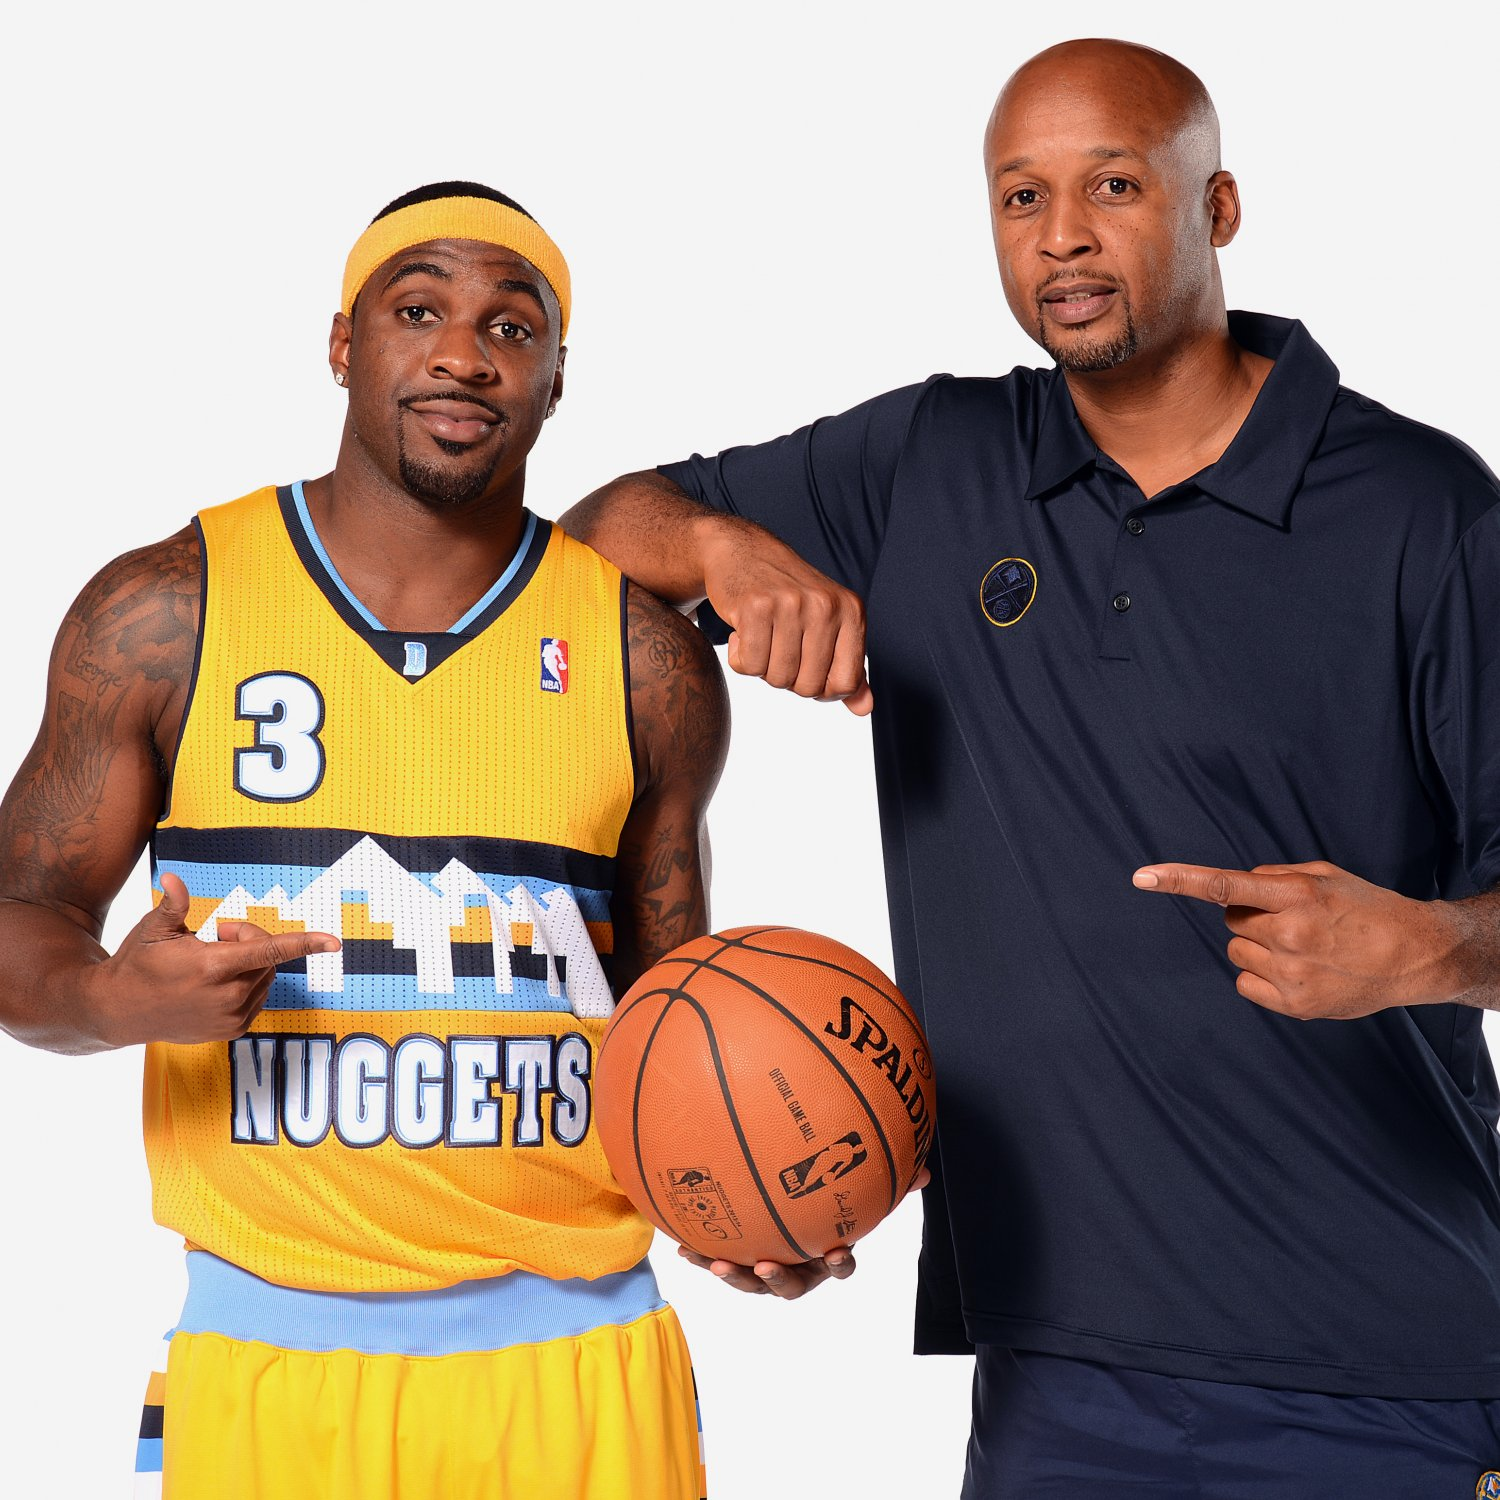 Denver Nuggets Media Day 2013: Photos, Interviews And